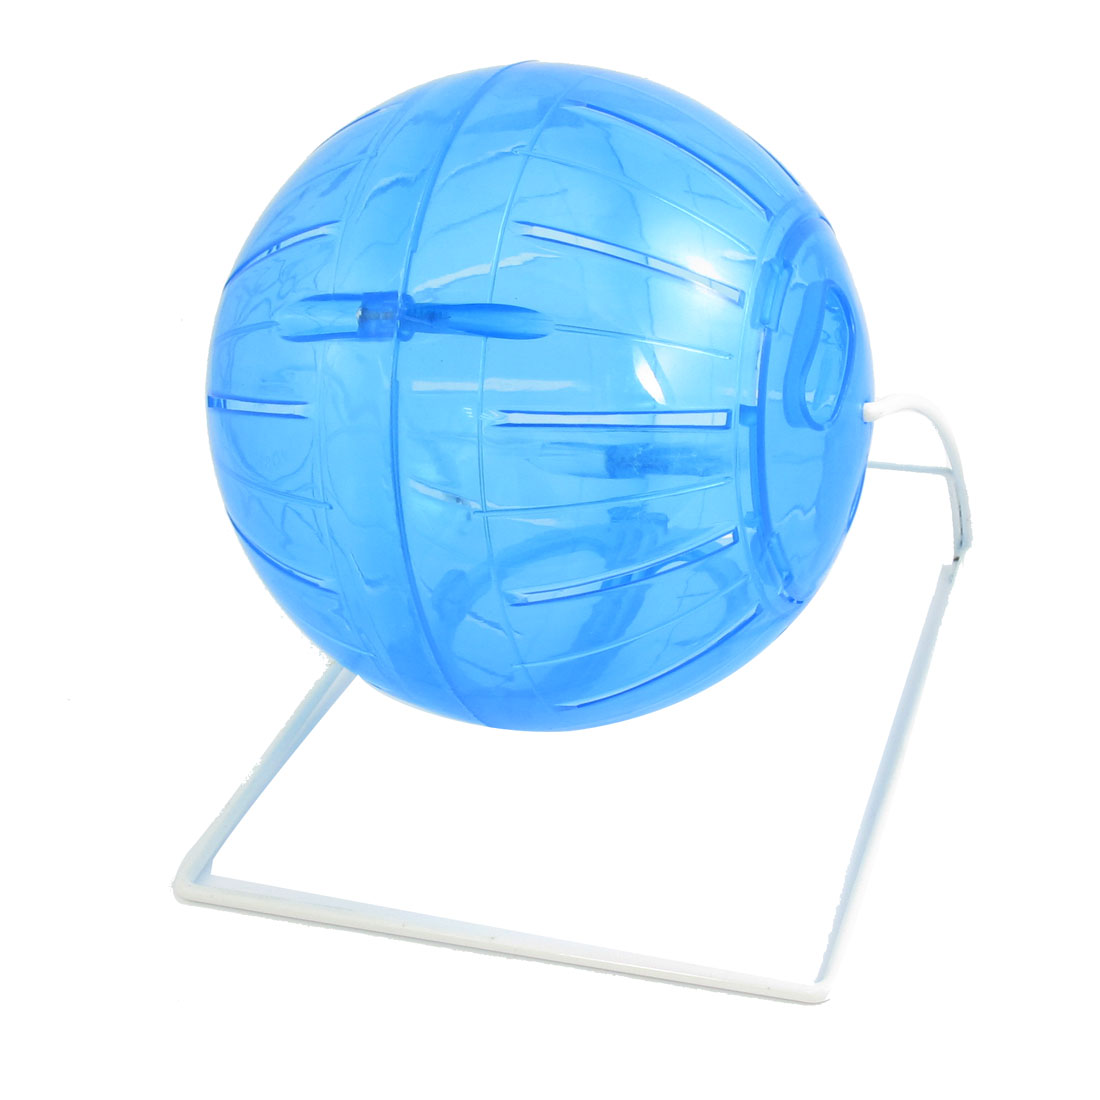 Mini Hamster Gerbil Mice Mouse Fitness Exercise Clear Blue Fun Toy Ball Wheel Cage